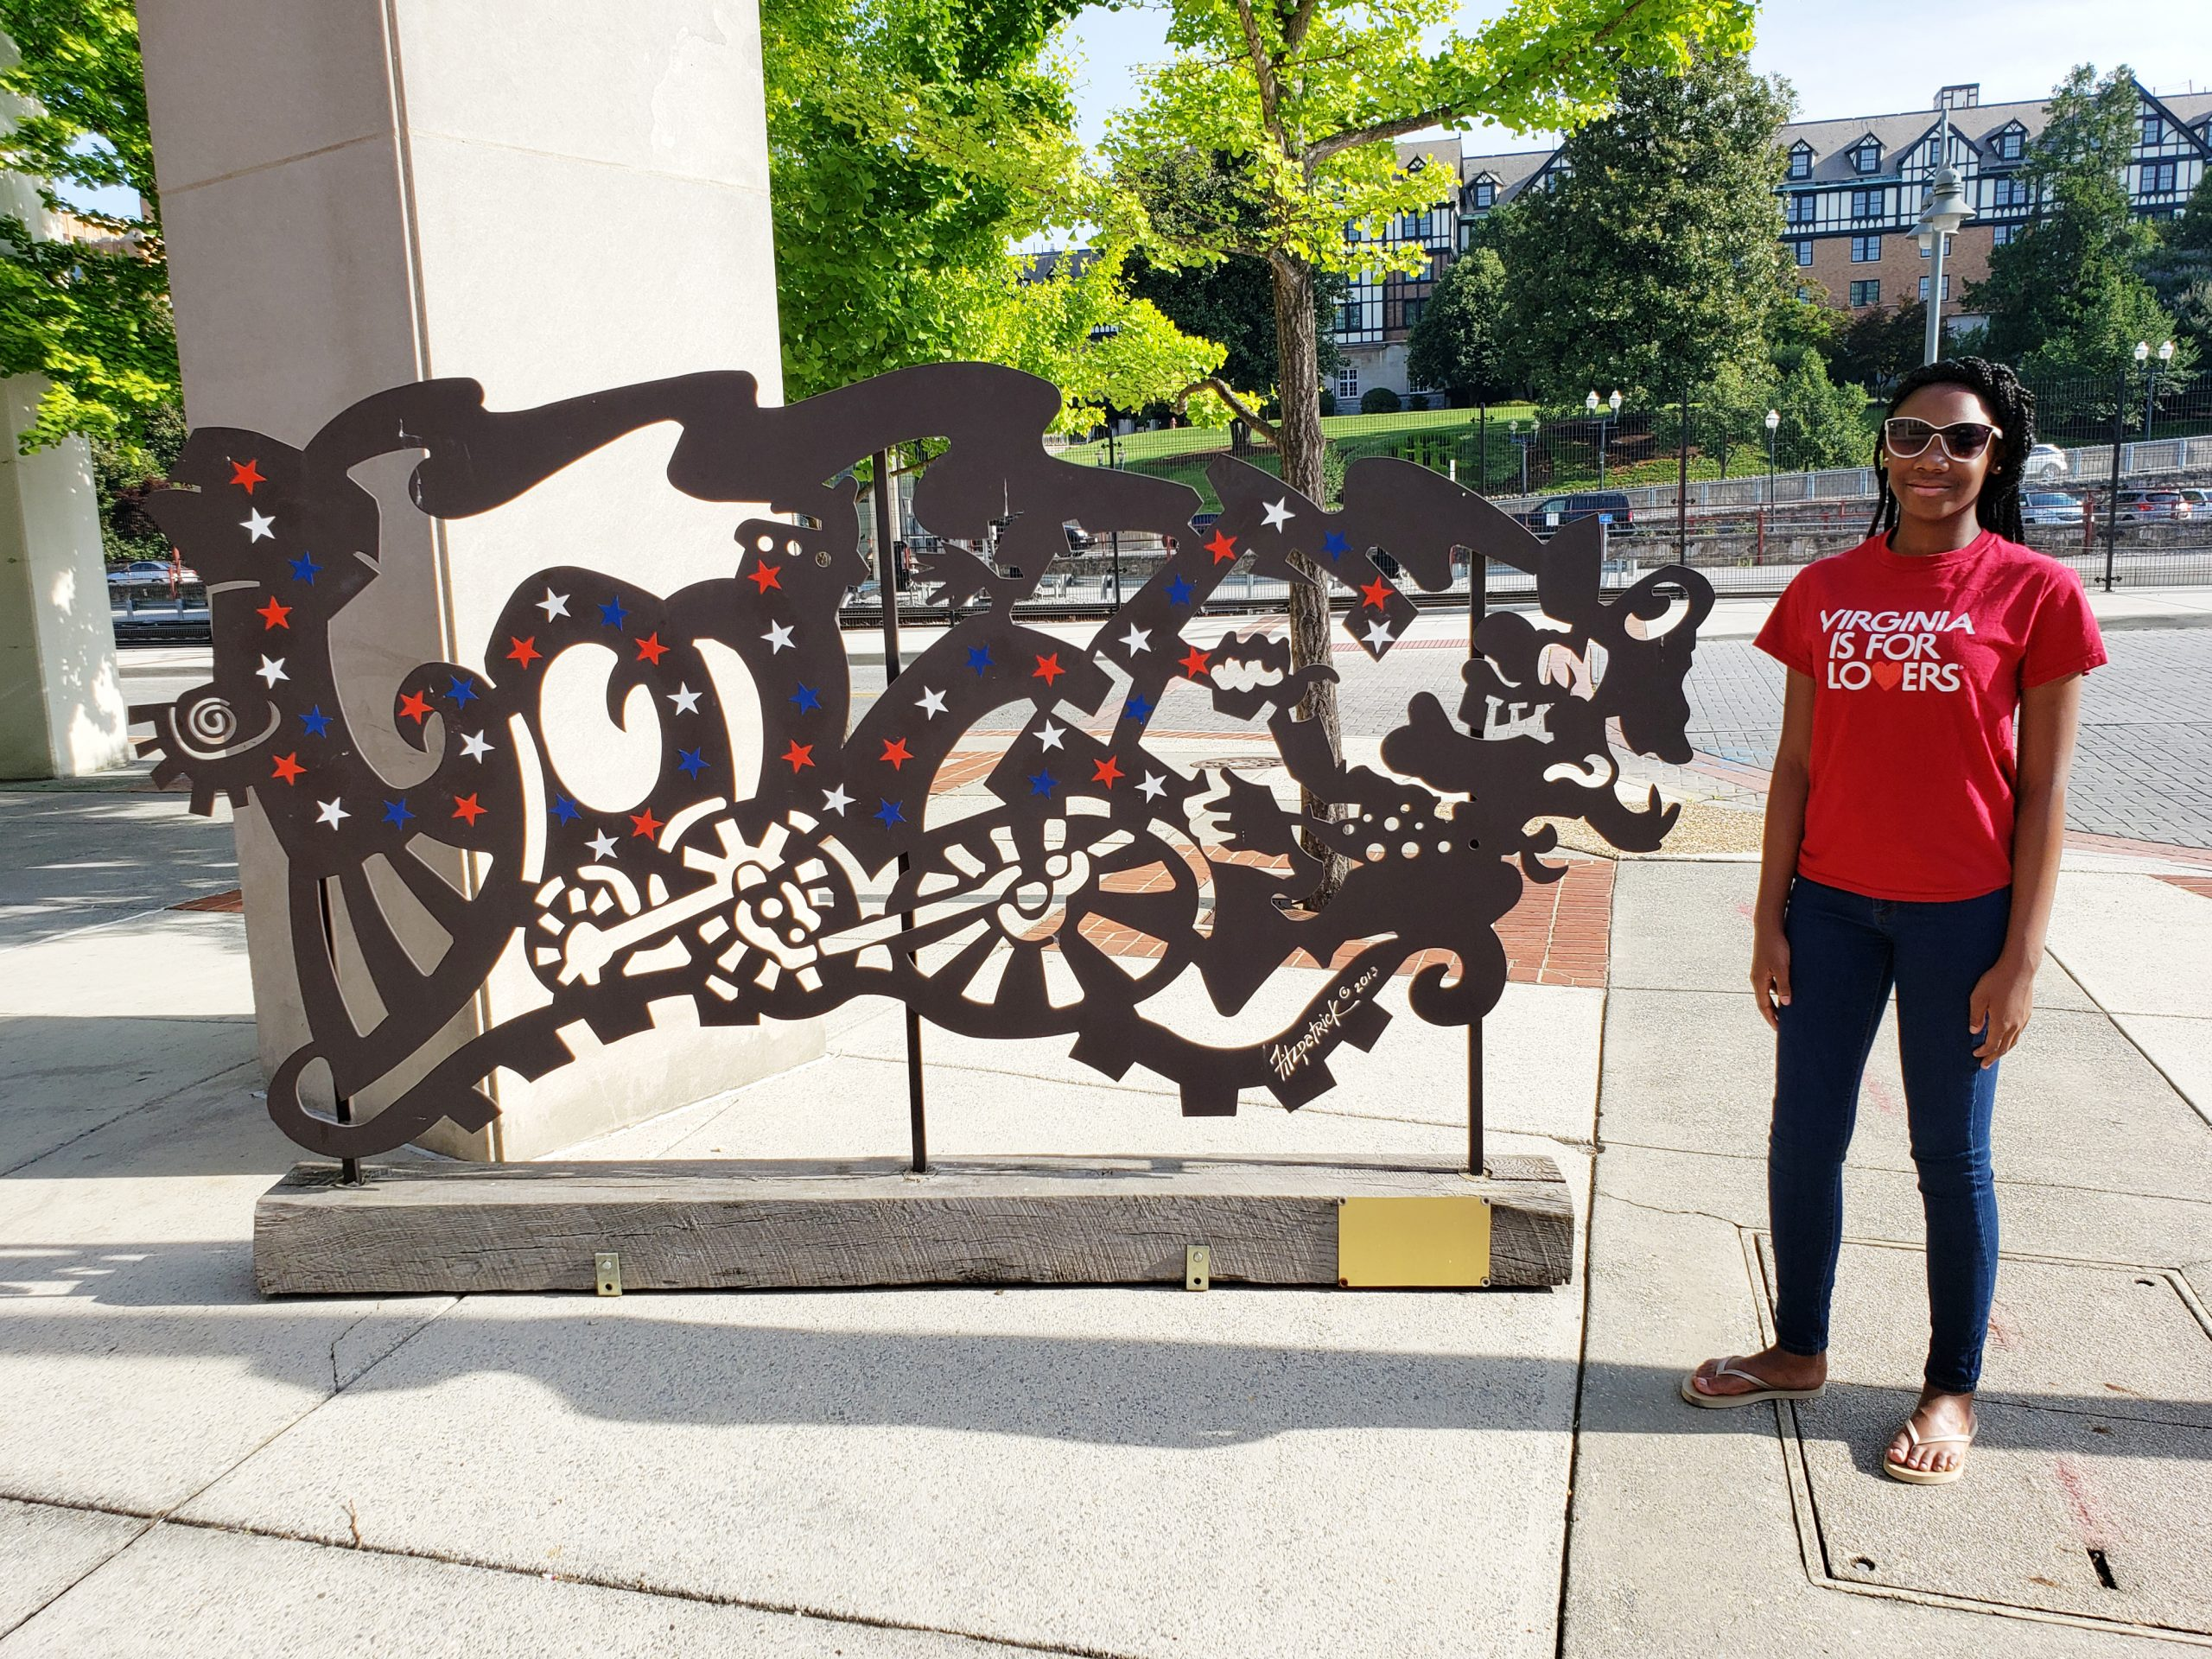 The LOVEwork was designed by well-known Roanoke artist Eric Fitzpatrick and was inspired by Roanoke's rail heritage.